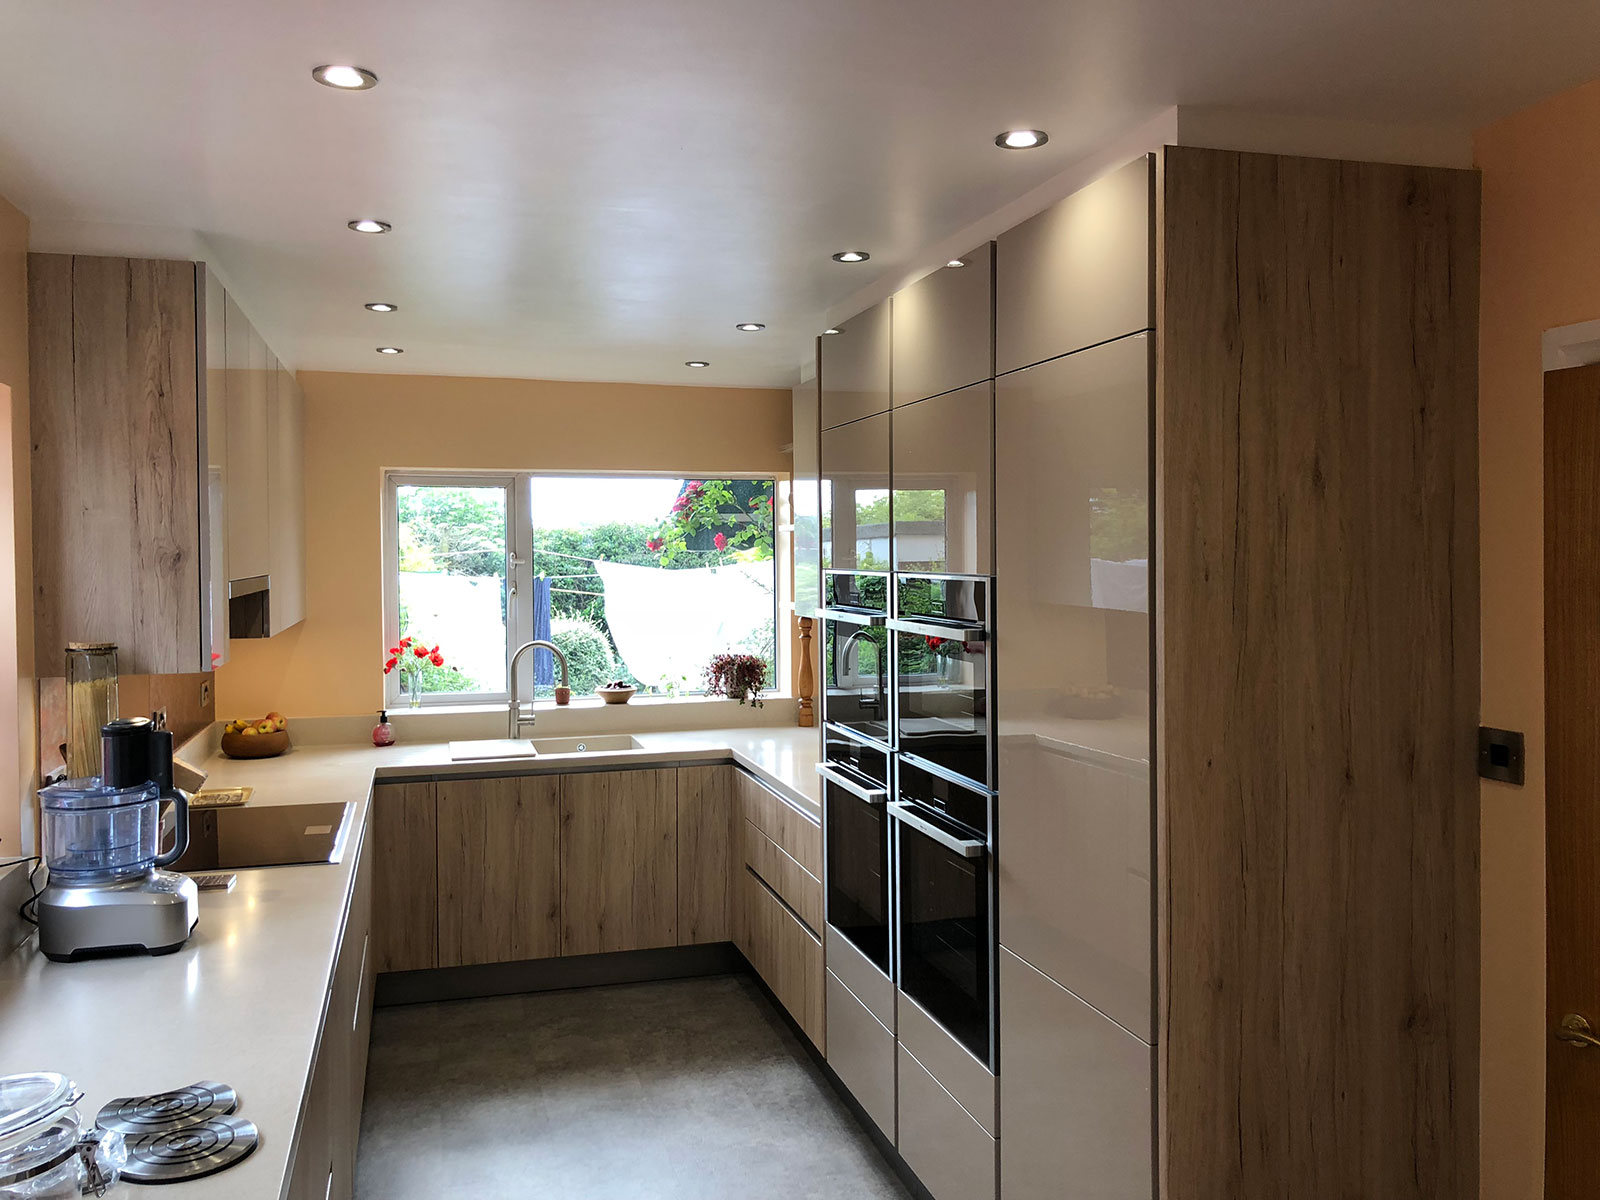 handless fitted kitchen Scholes 2